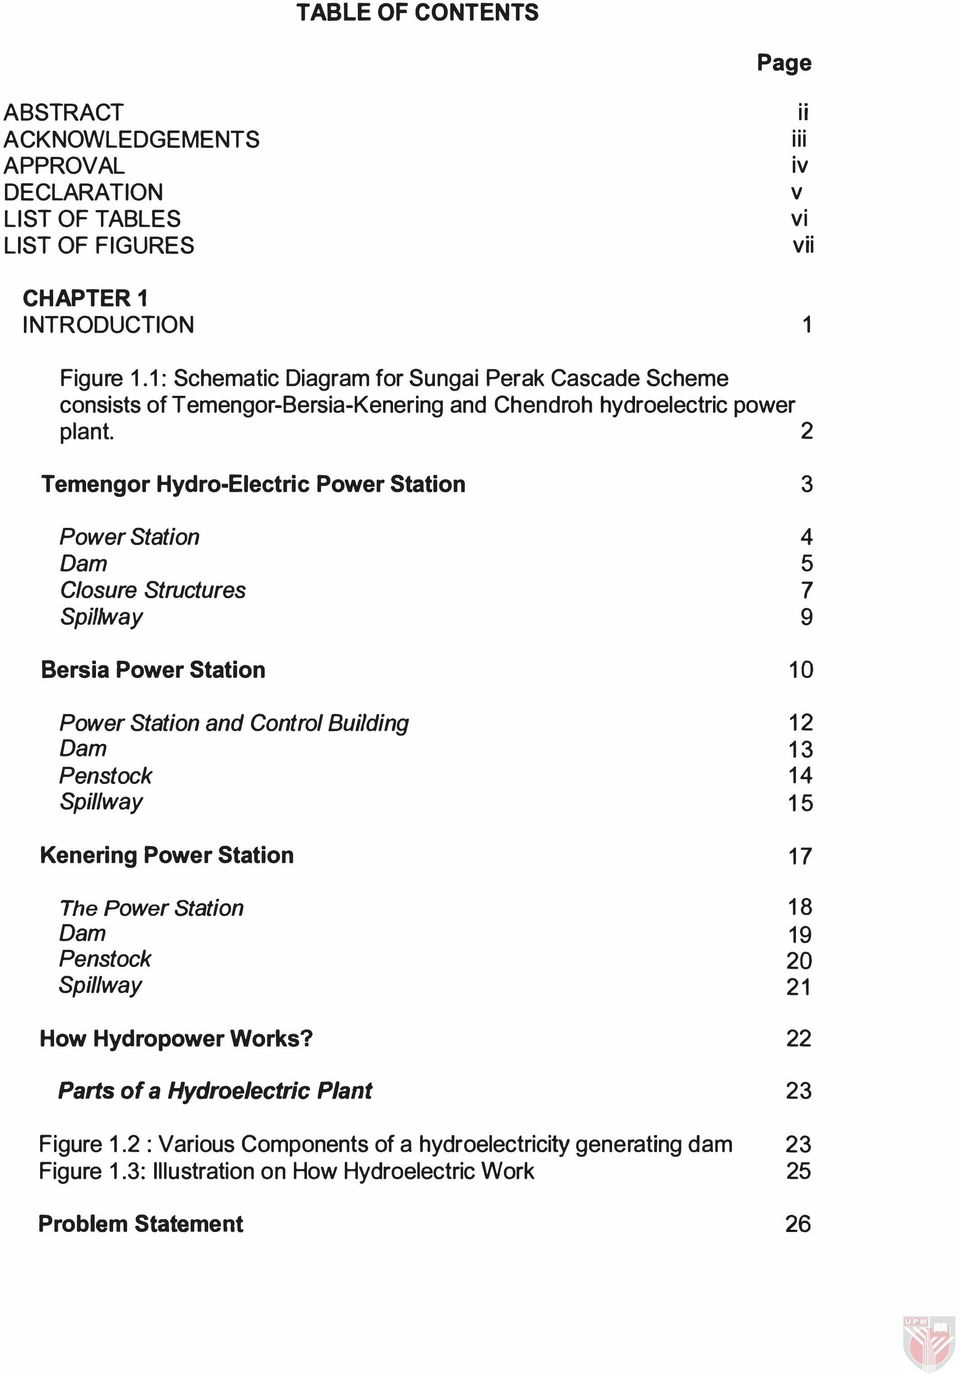 hight resolution of 2 temengor hydro electric power station 3 power station 4 dam 5 closure structures 7